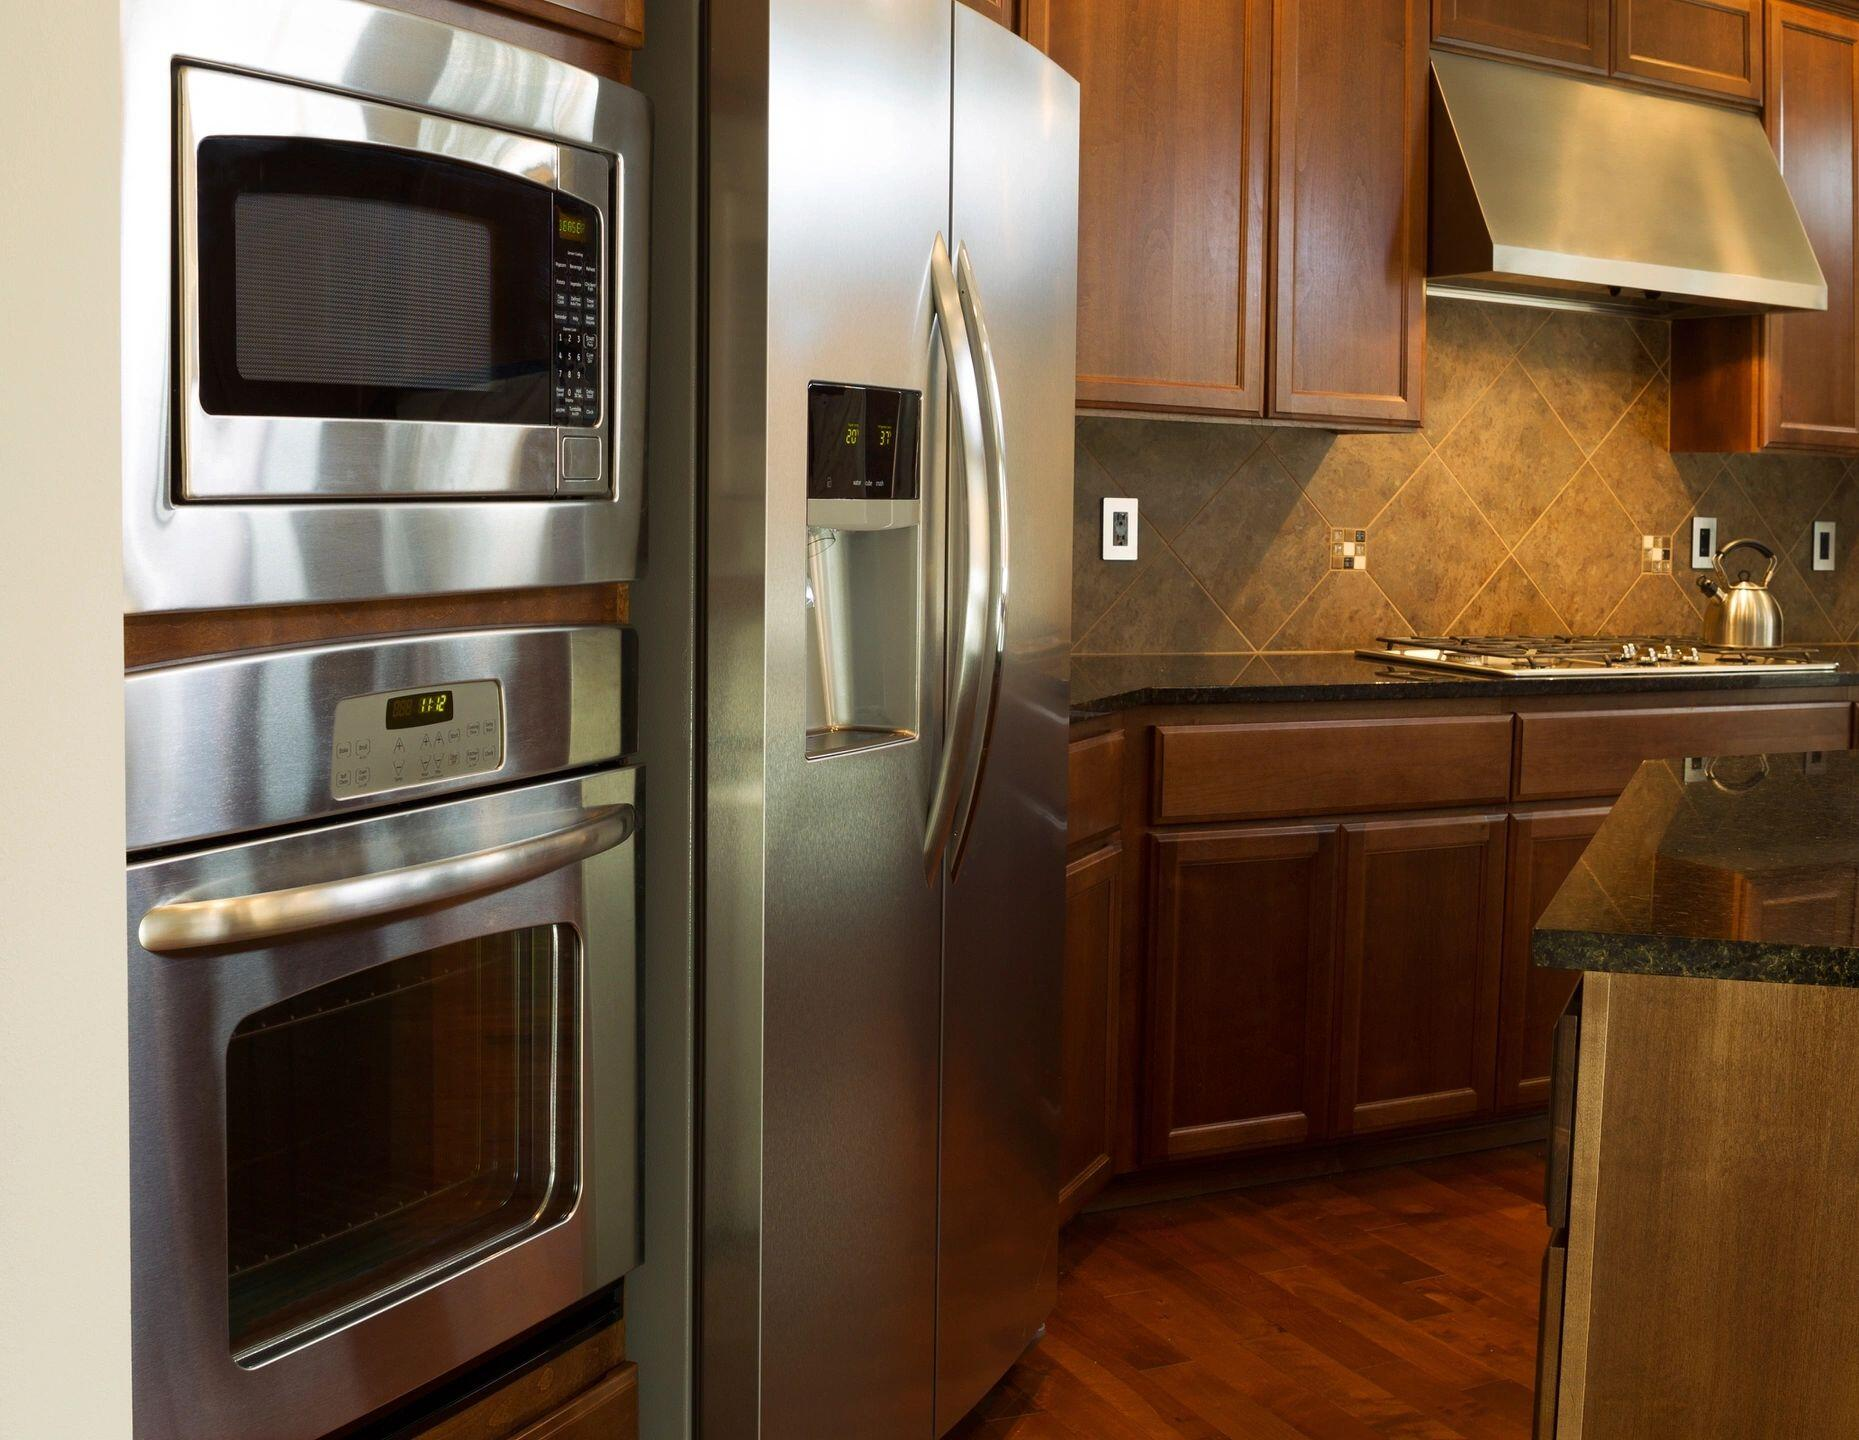 Refrigerator Organized: How Can I Organize My Fridge to Save Time, Money & Reduce Stress?